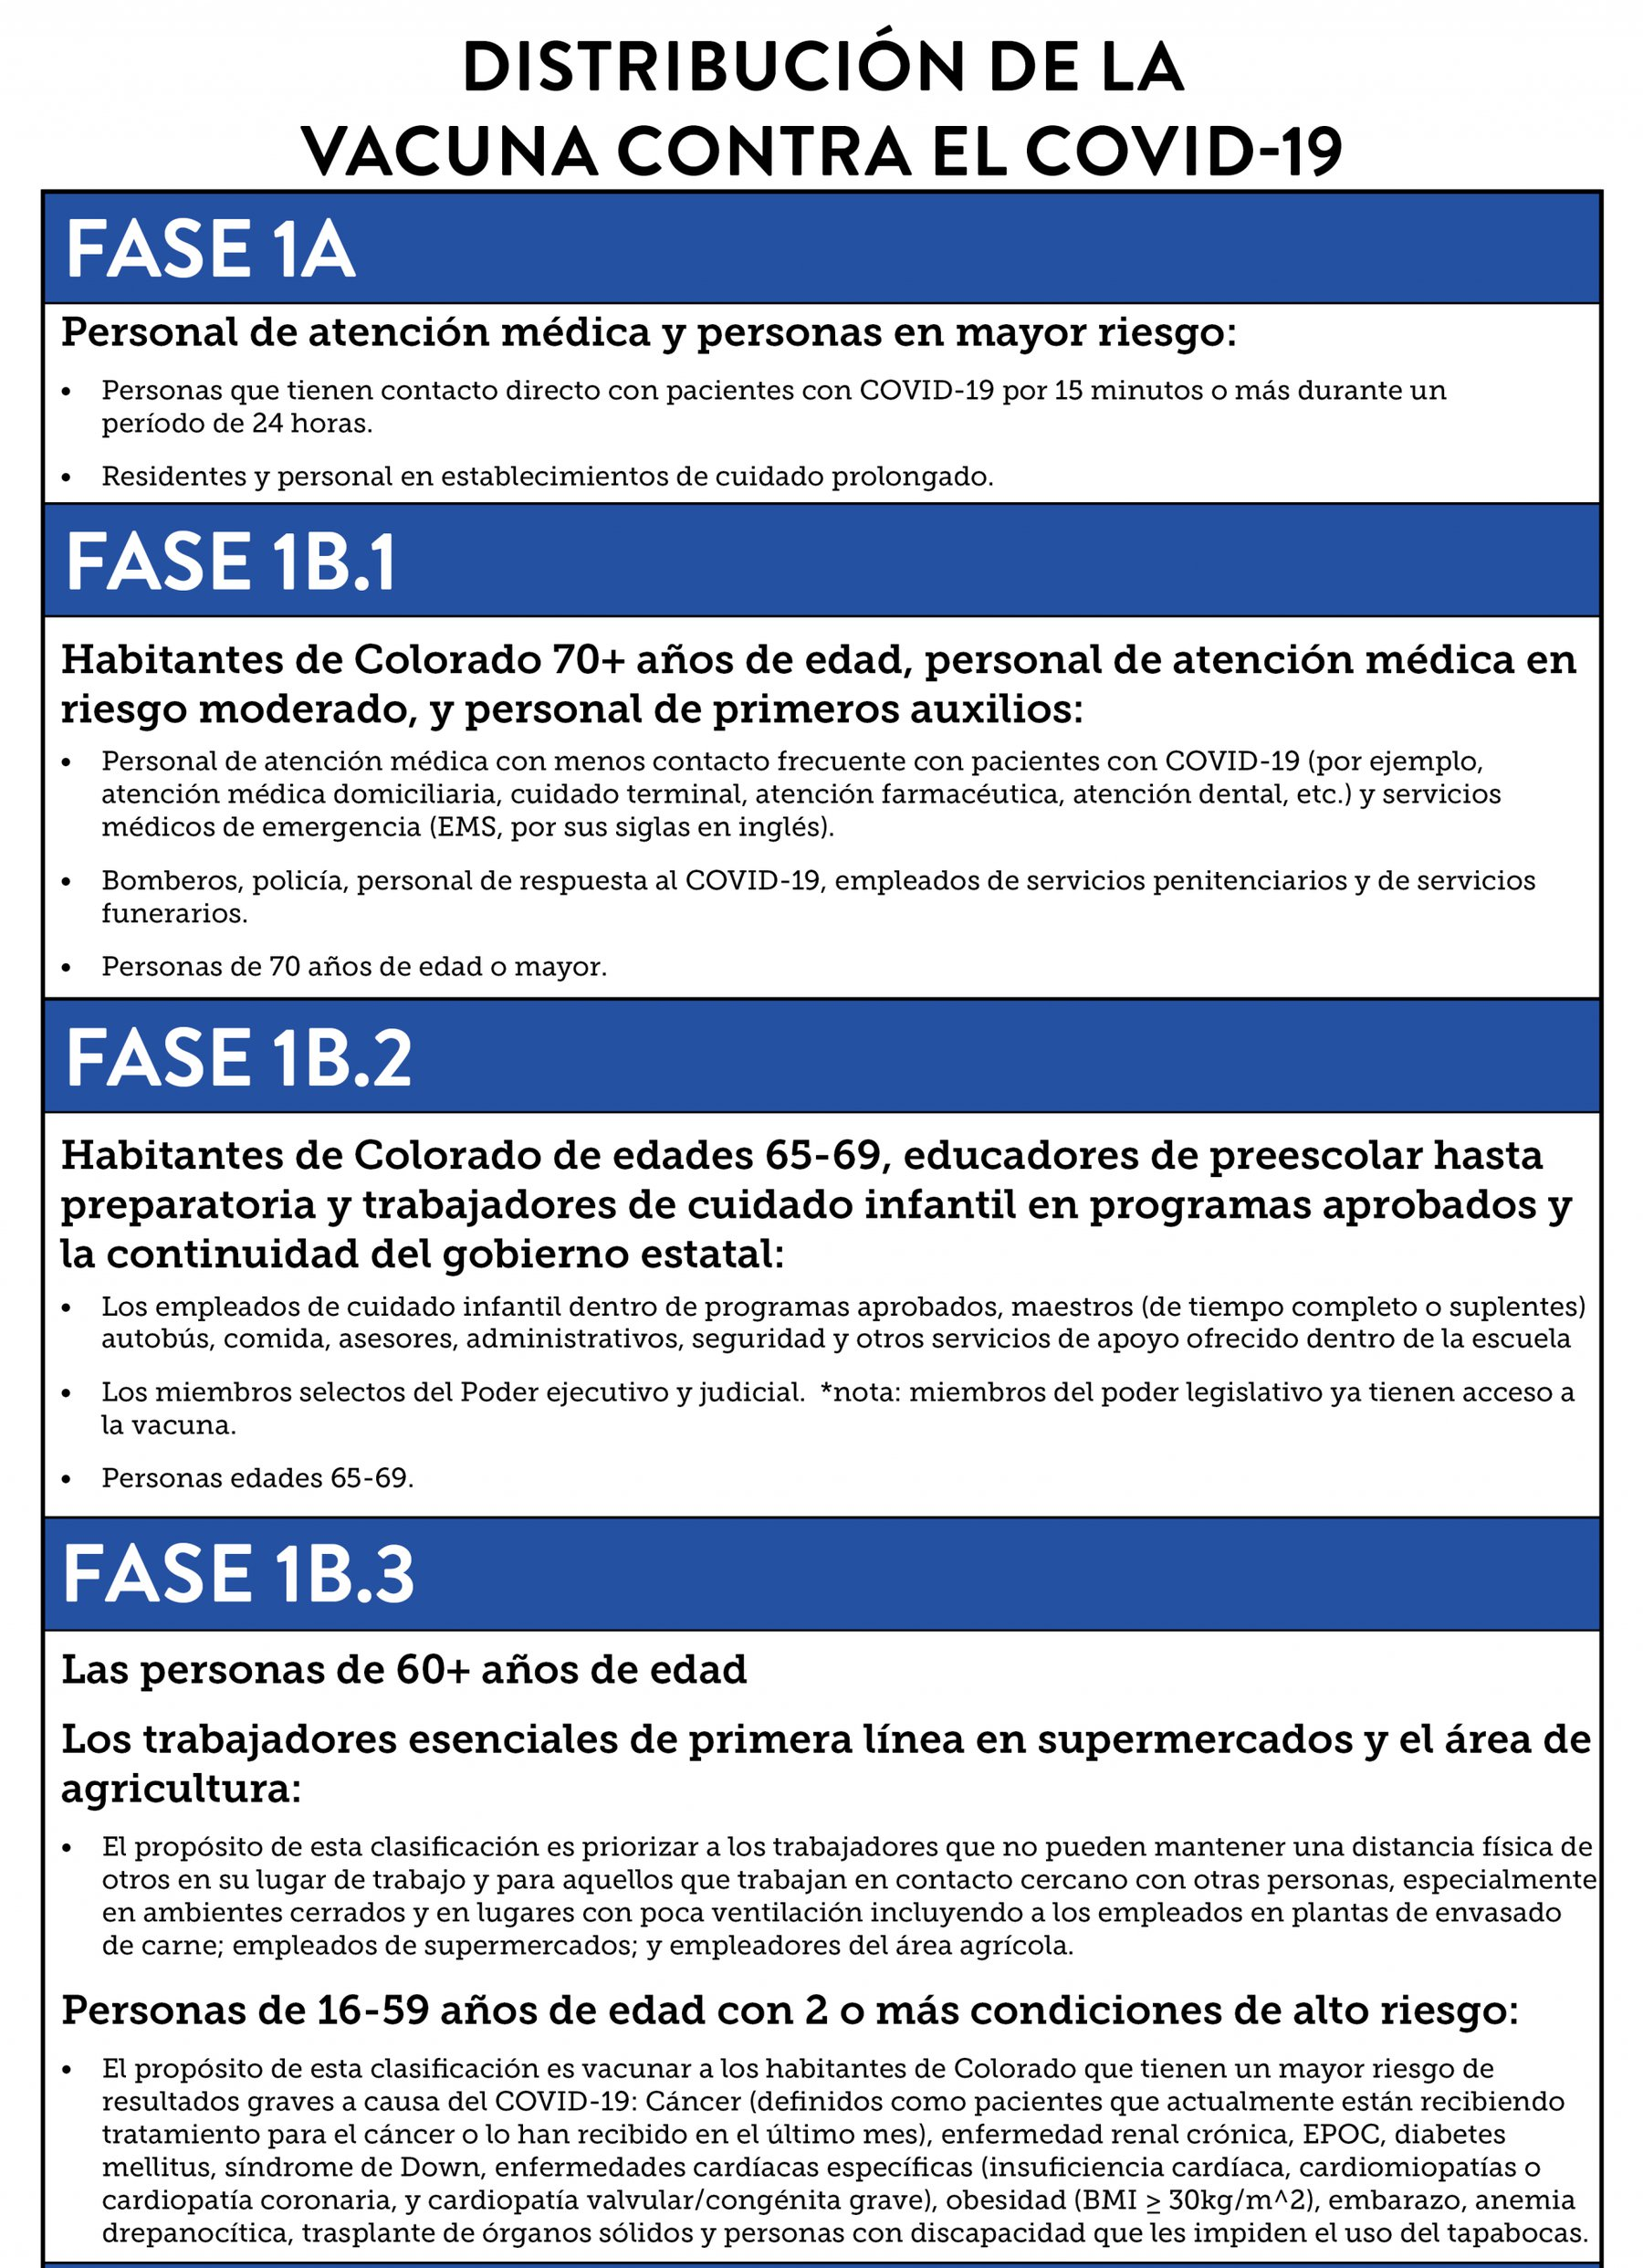 WEB-9_SPA_vaccine_phases_for_providers_-Spanish.jpeg (WEB-9_SPA_vaccine_phases_for_providers_-Spanish.webp)